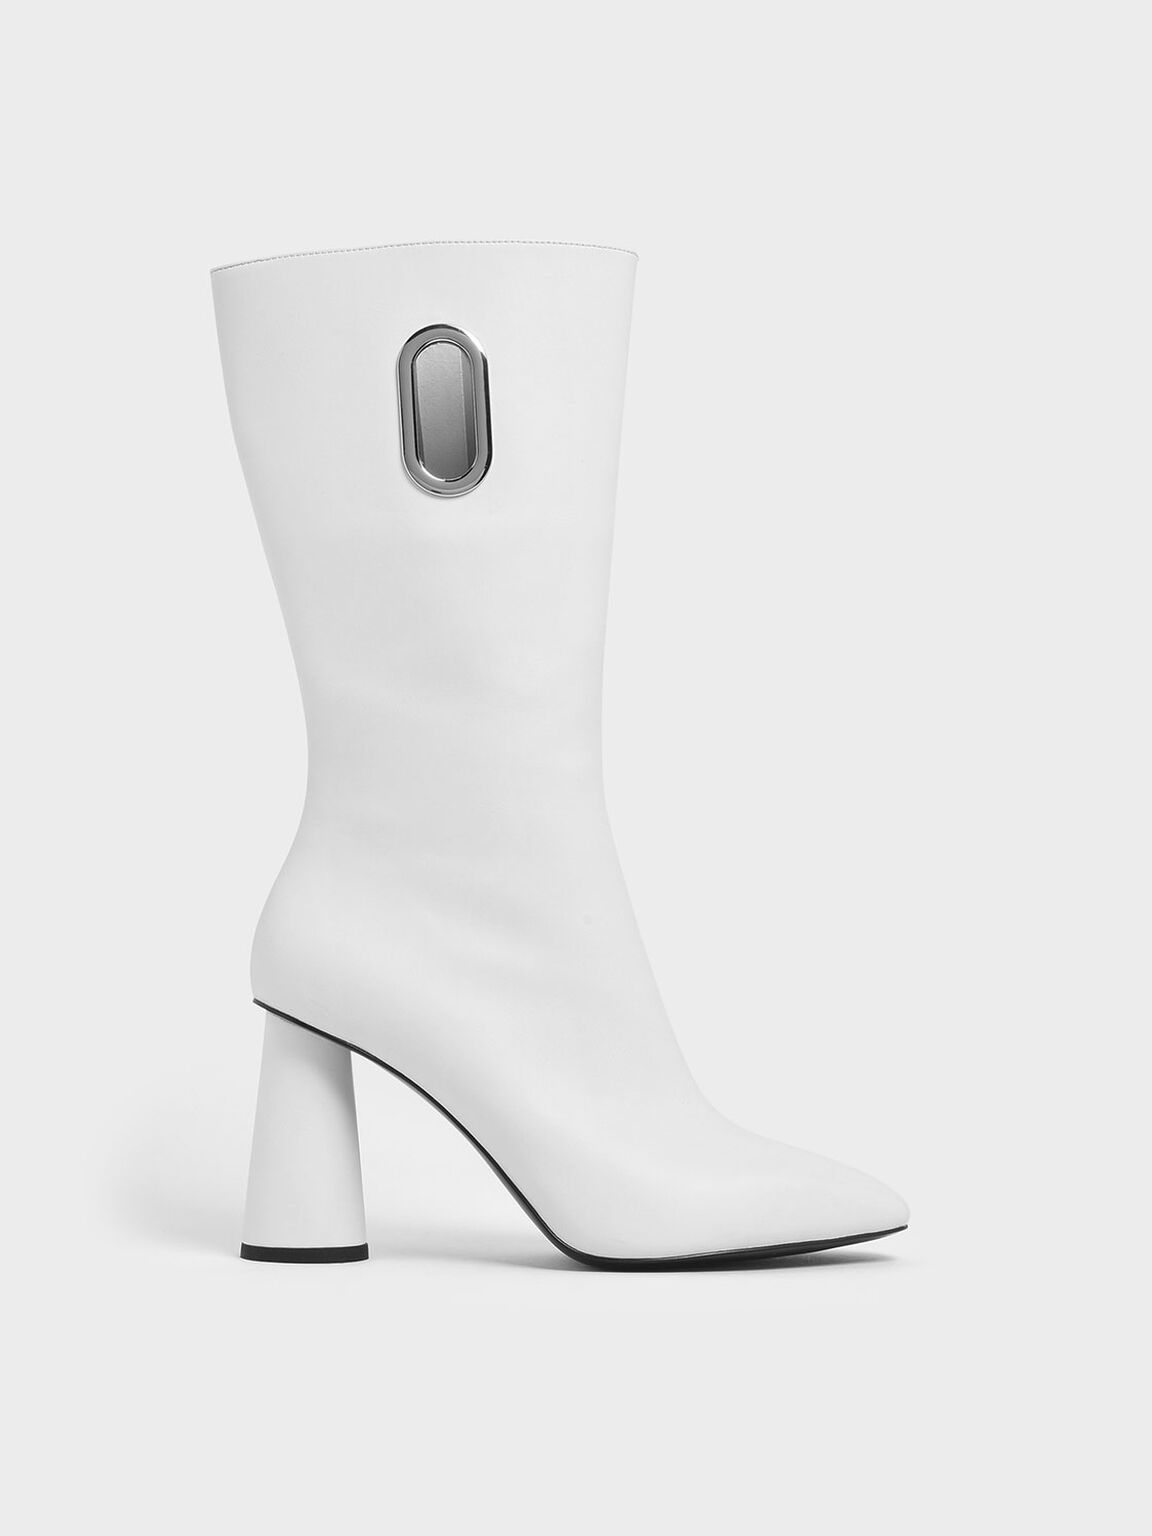 Eyelet Detail Cylindrical Heel Calf Boots, White, hi-res